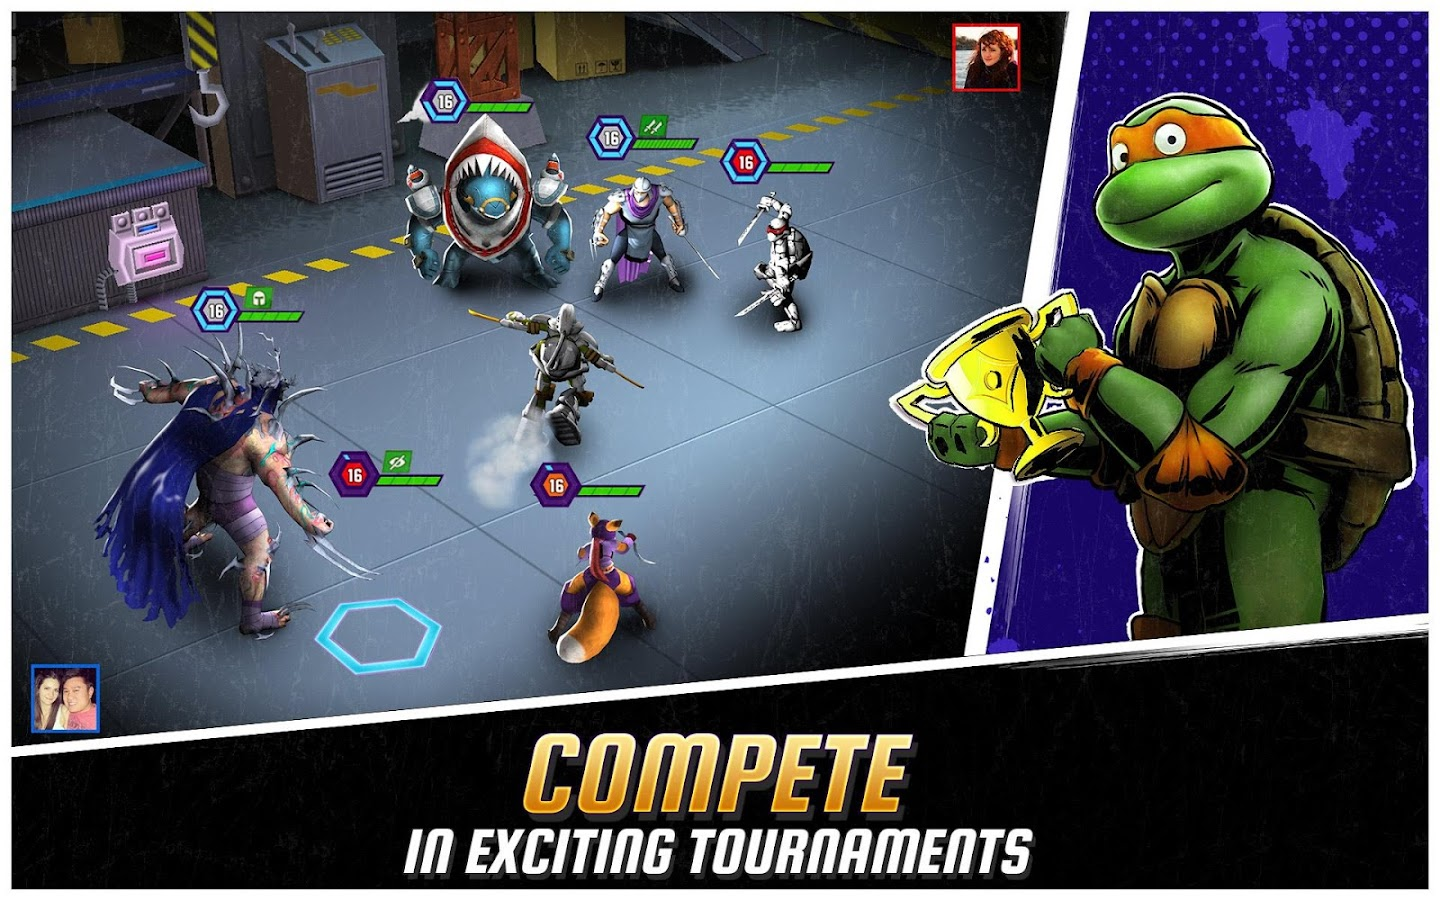 Ninja Turtles: Legends Screenshot 2